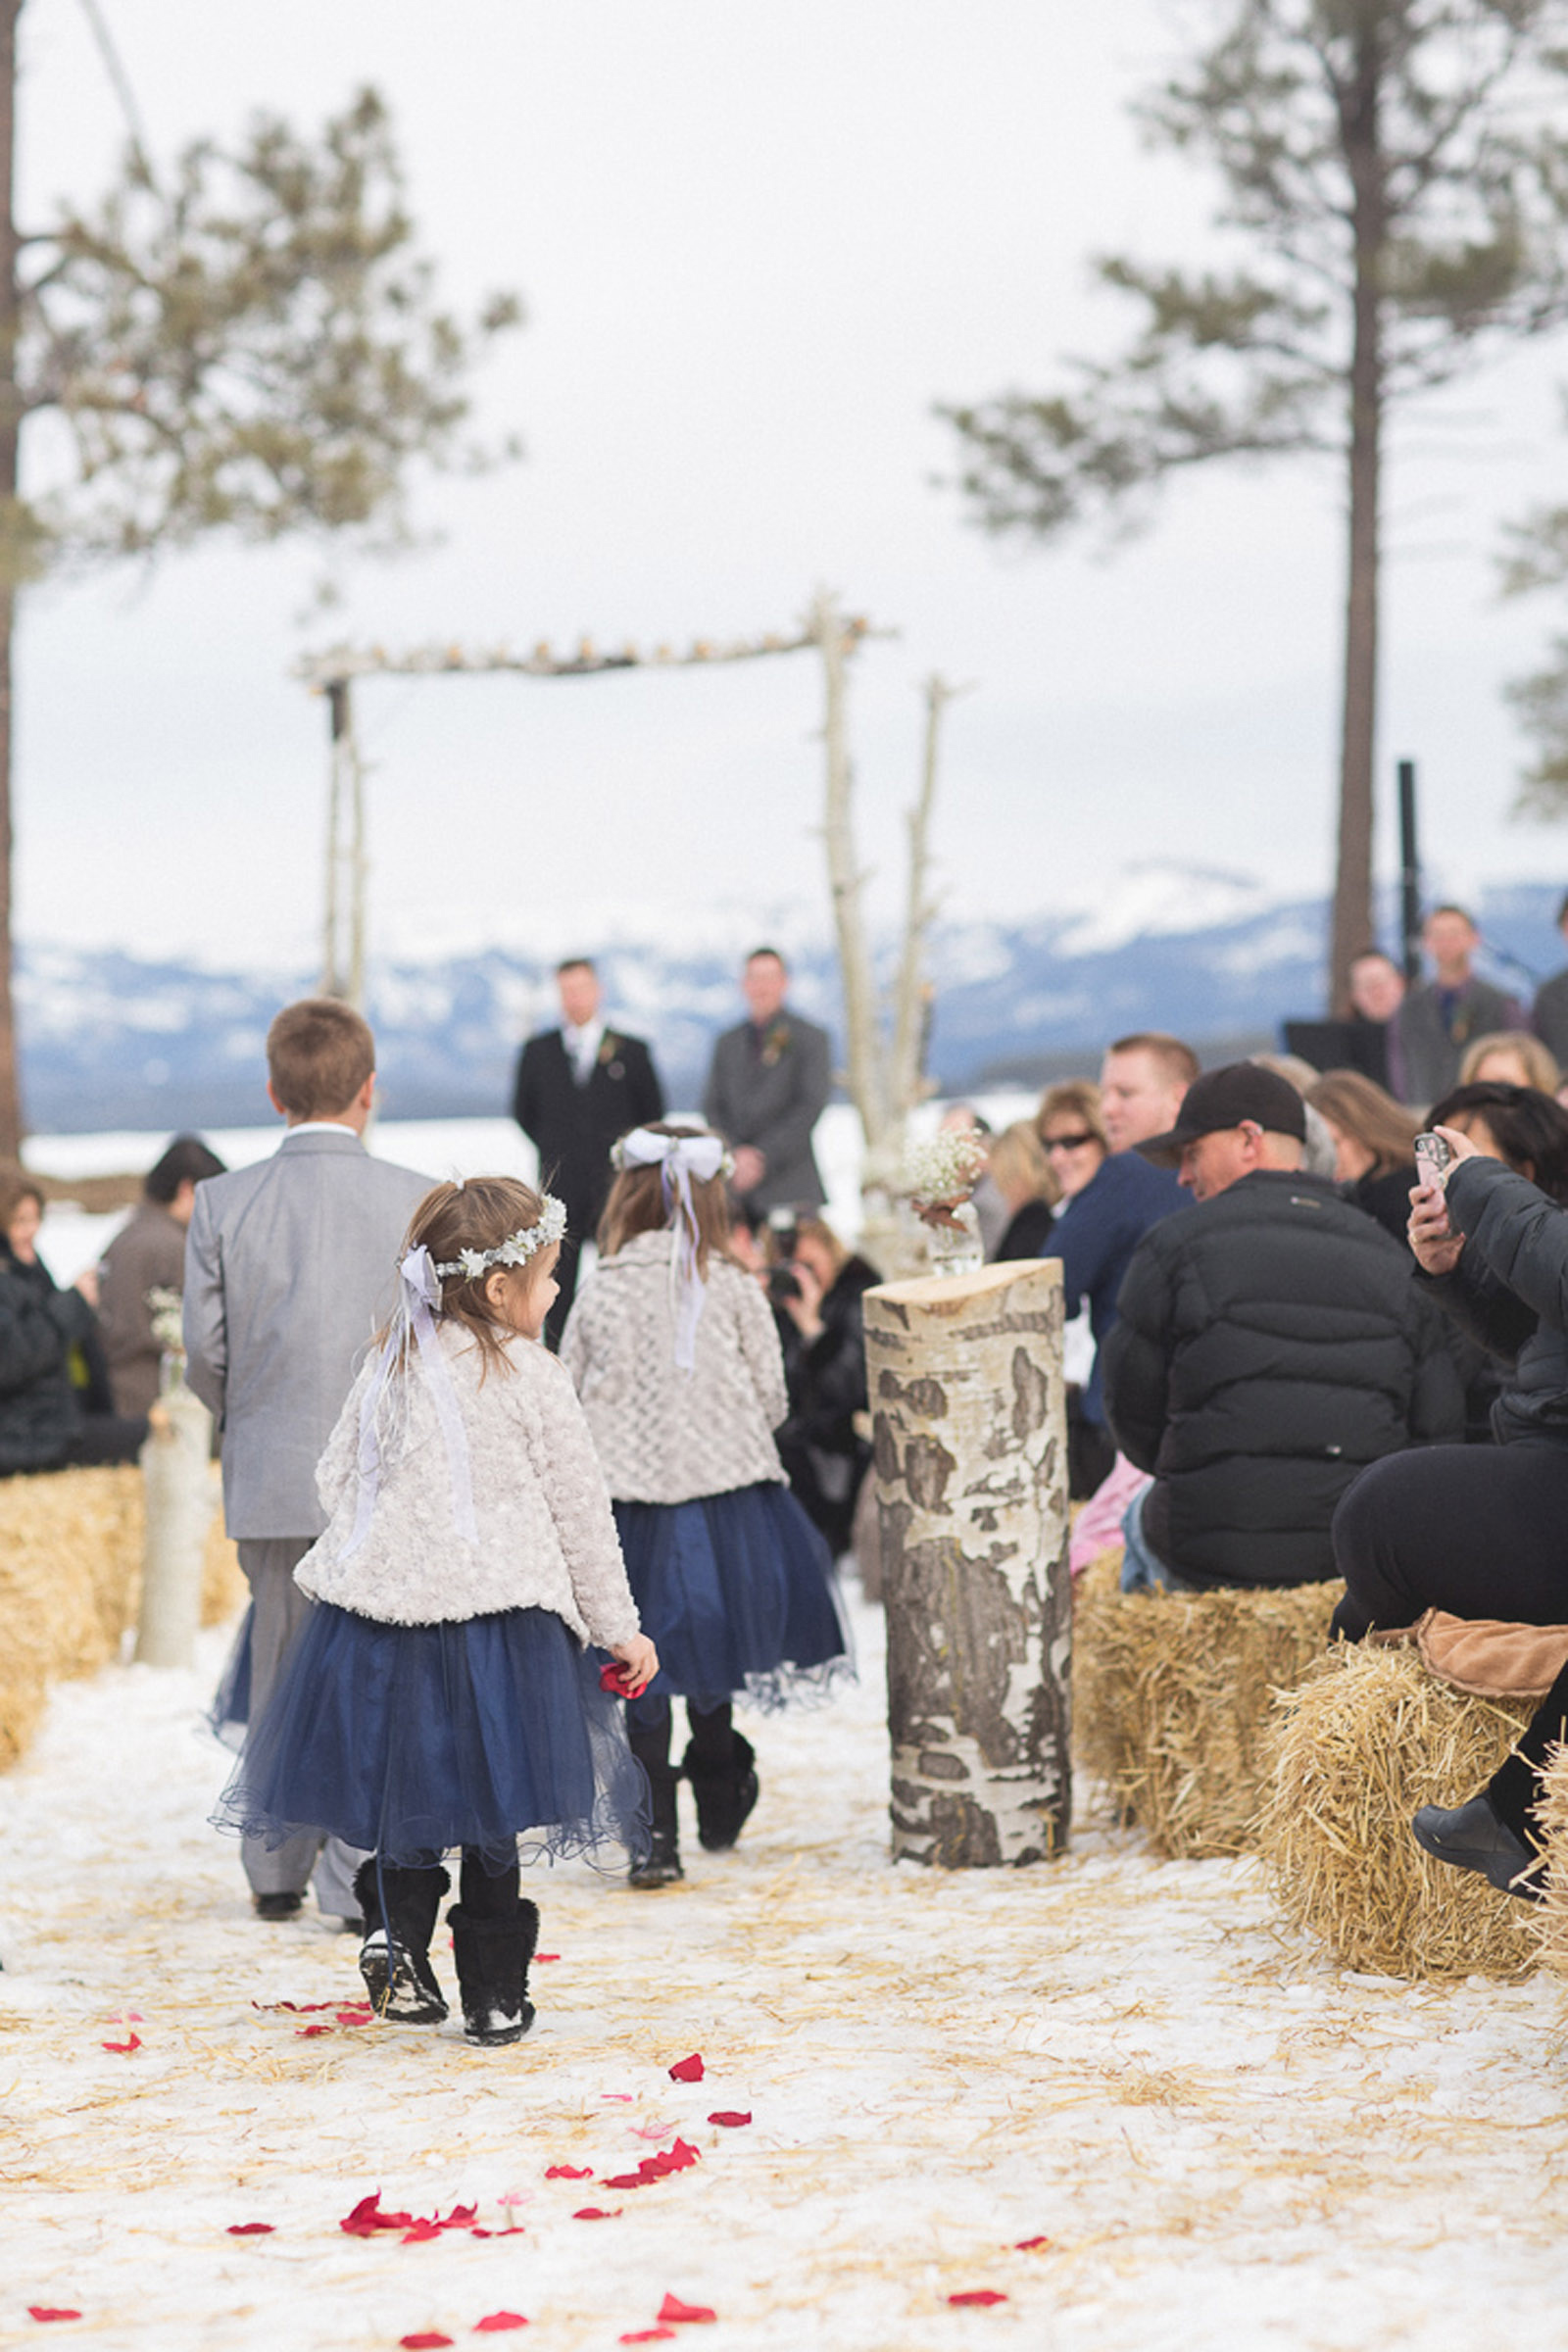 085-wedding-ceremony-in-pagosa-springs-wedding-photographer-snow-winter-wedding